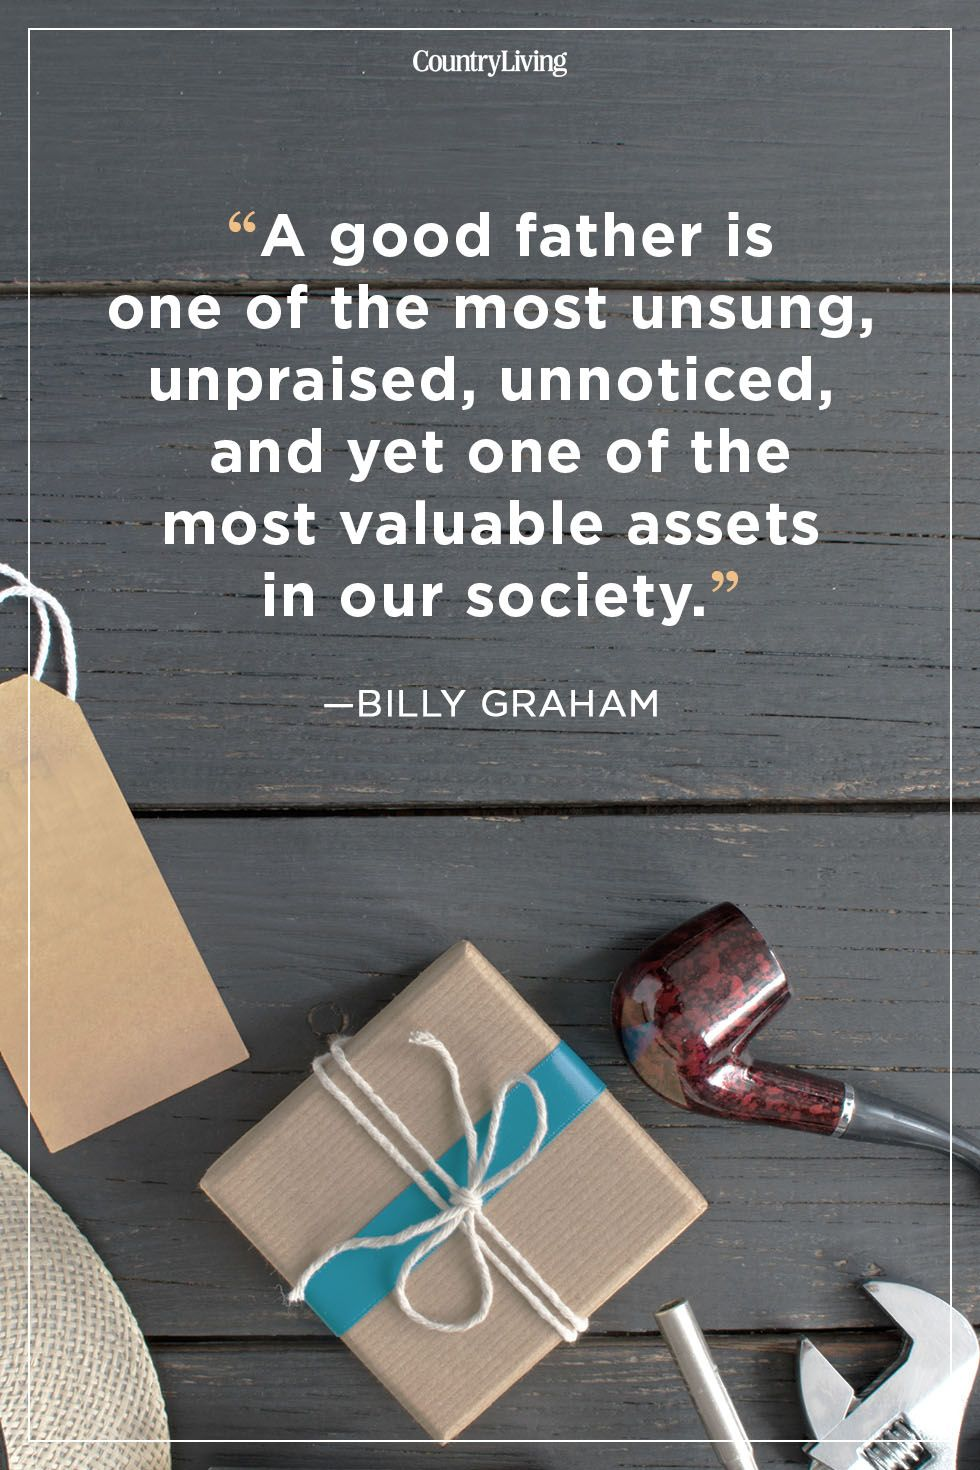 Image of: Inspirational Quotes Fathers Day Quotes Billy Graham Country Living Magazine 30 Best Fathers Day Quotes Good Quotes About Dads